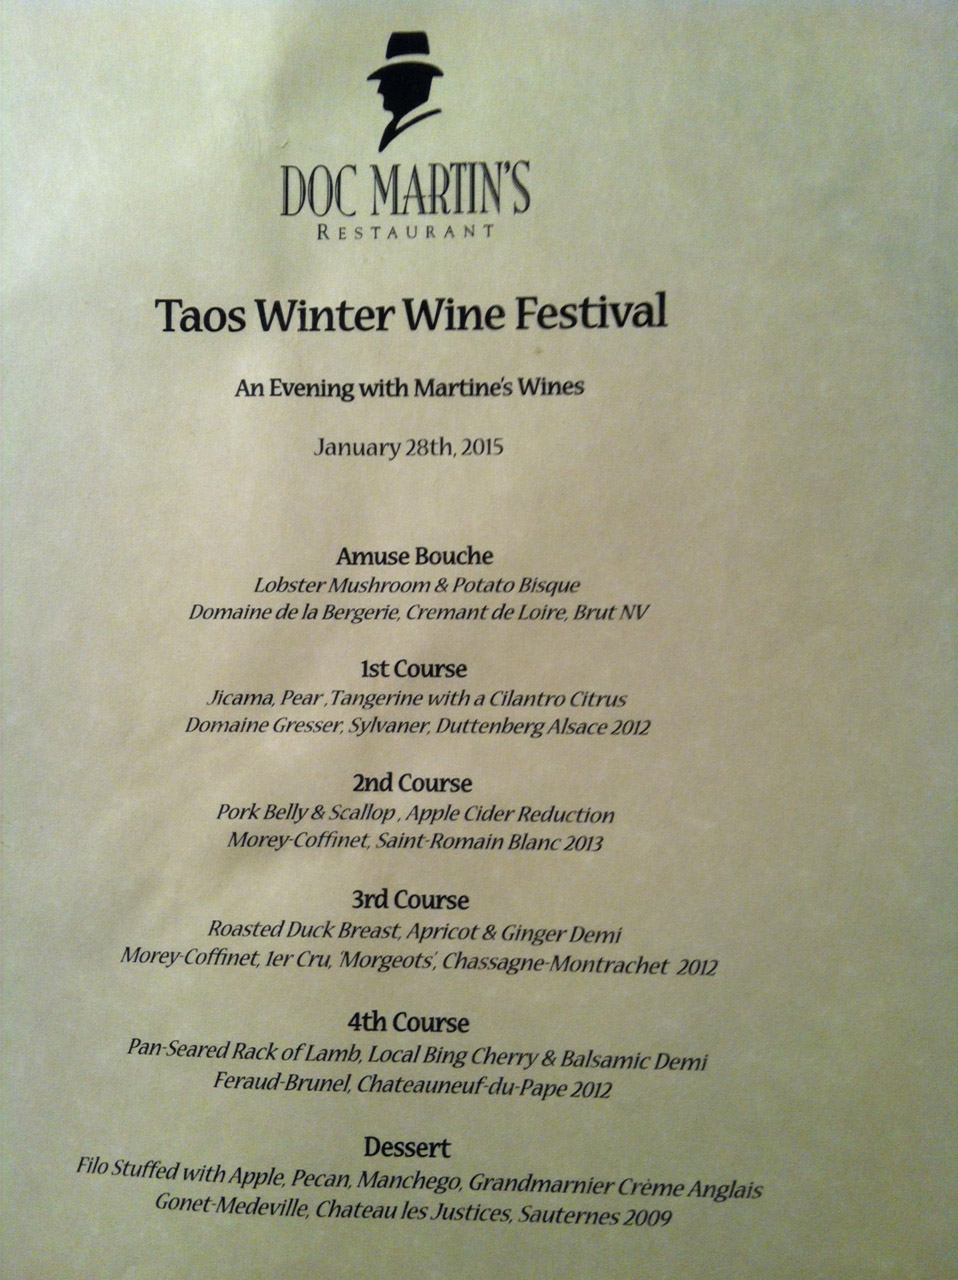 dinner menu at doc martins